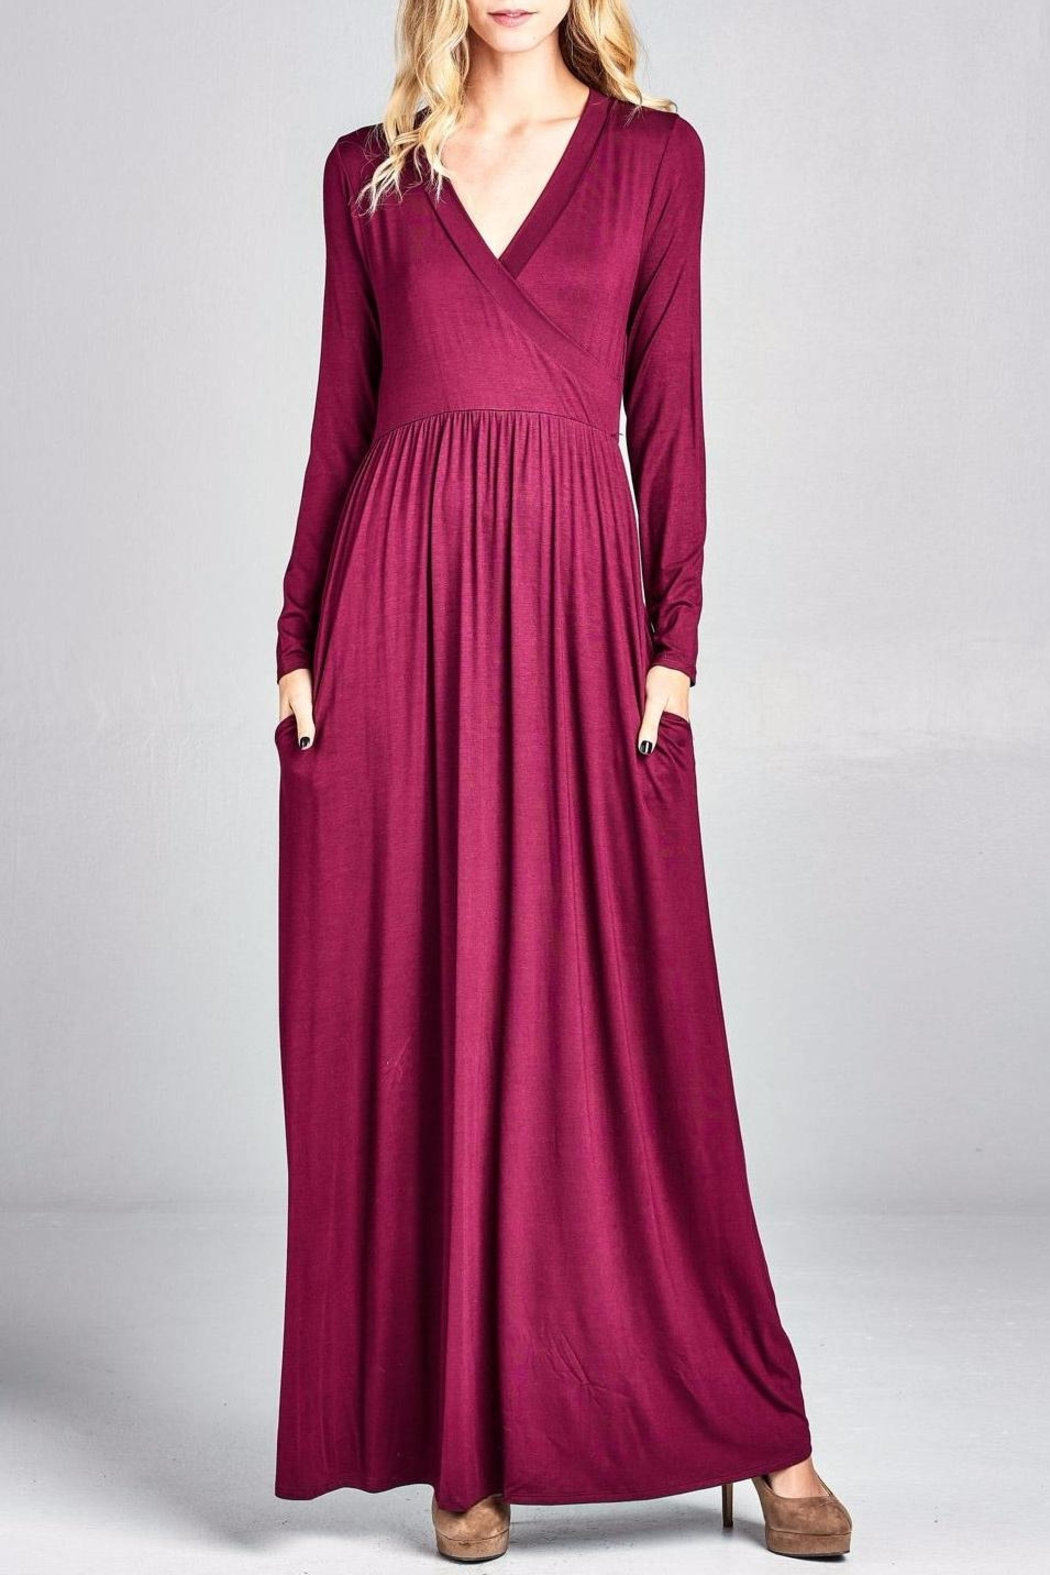 Nu Label Maxi-Dress With Pockets - Main Image